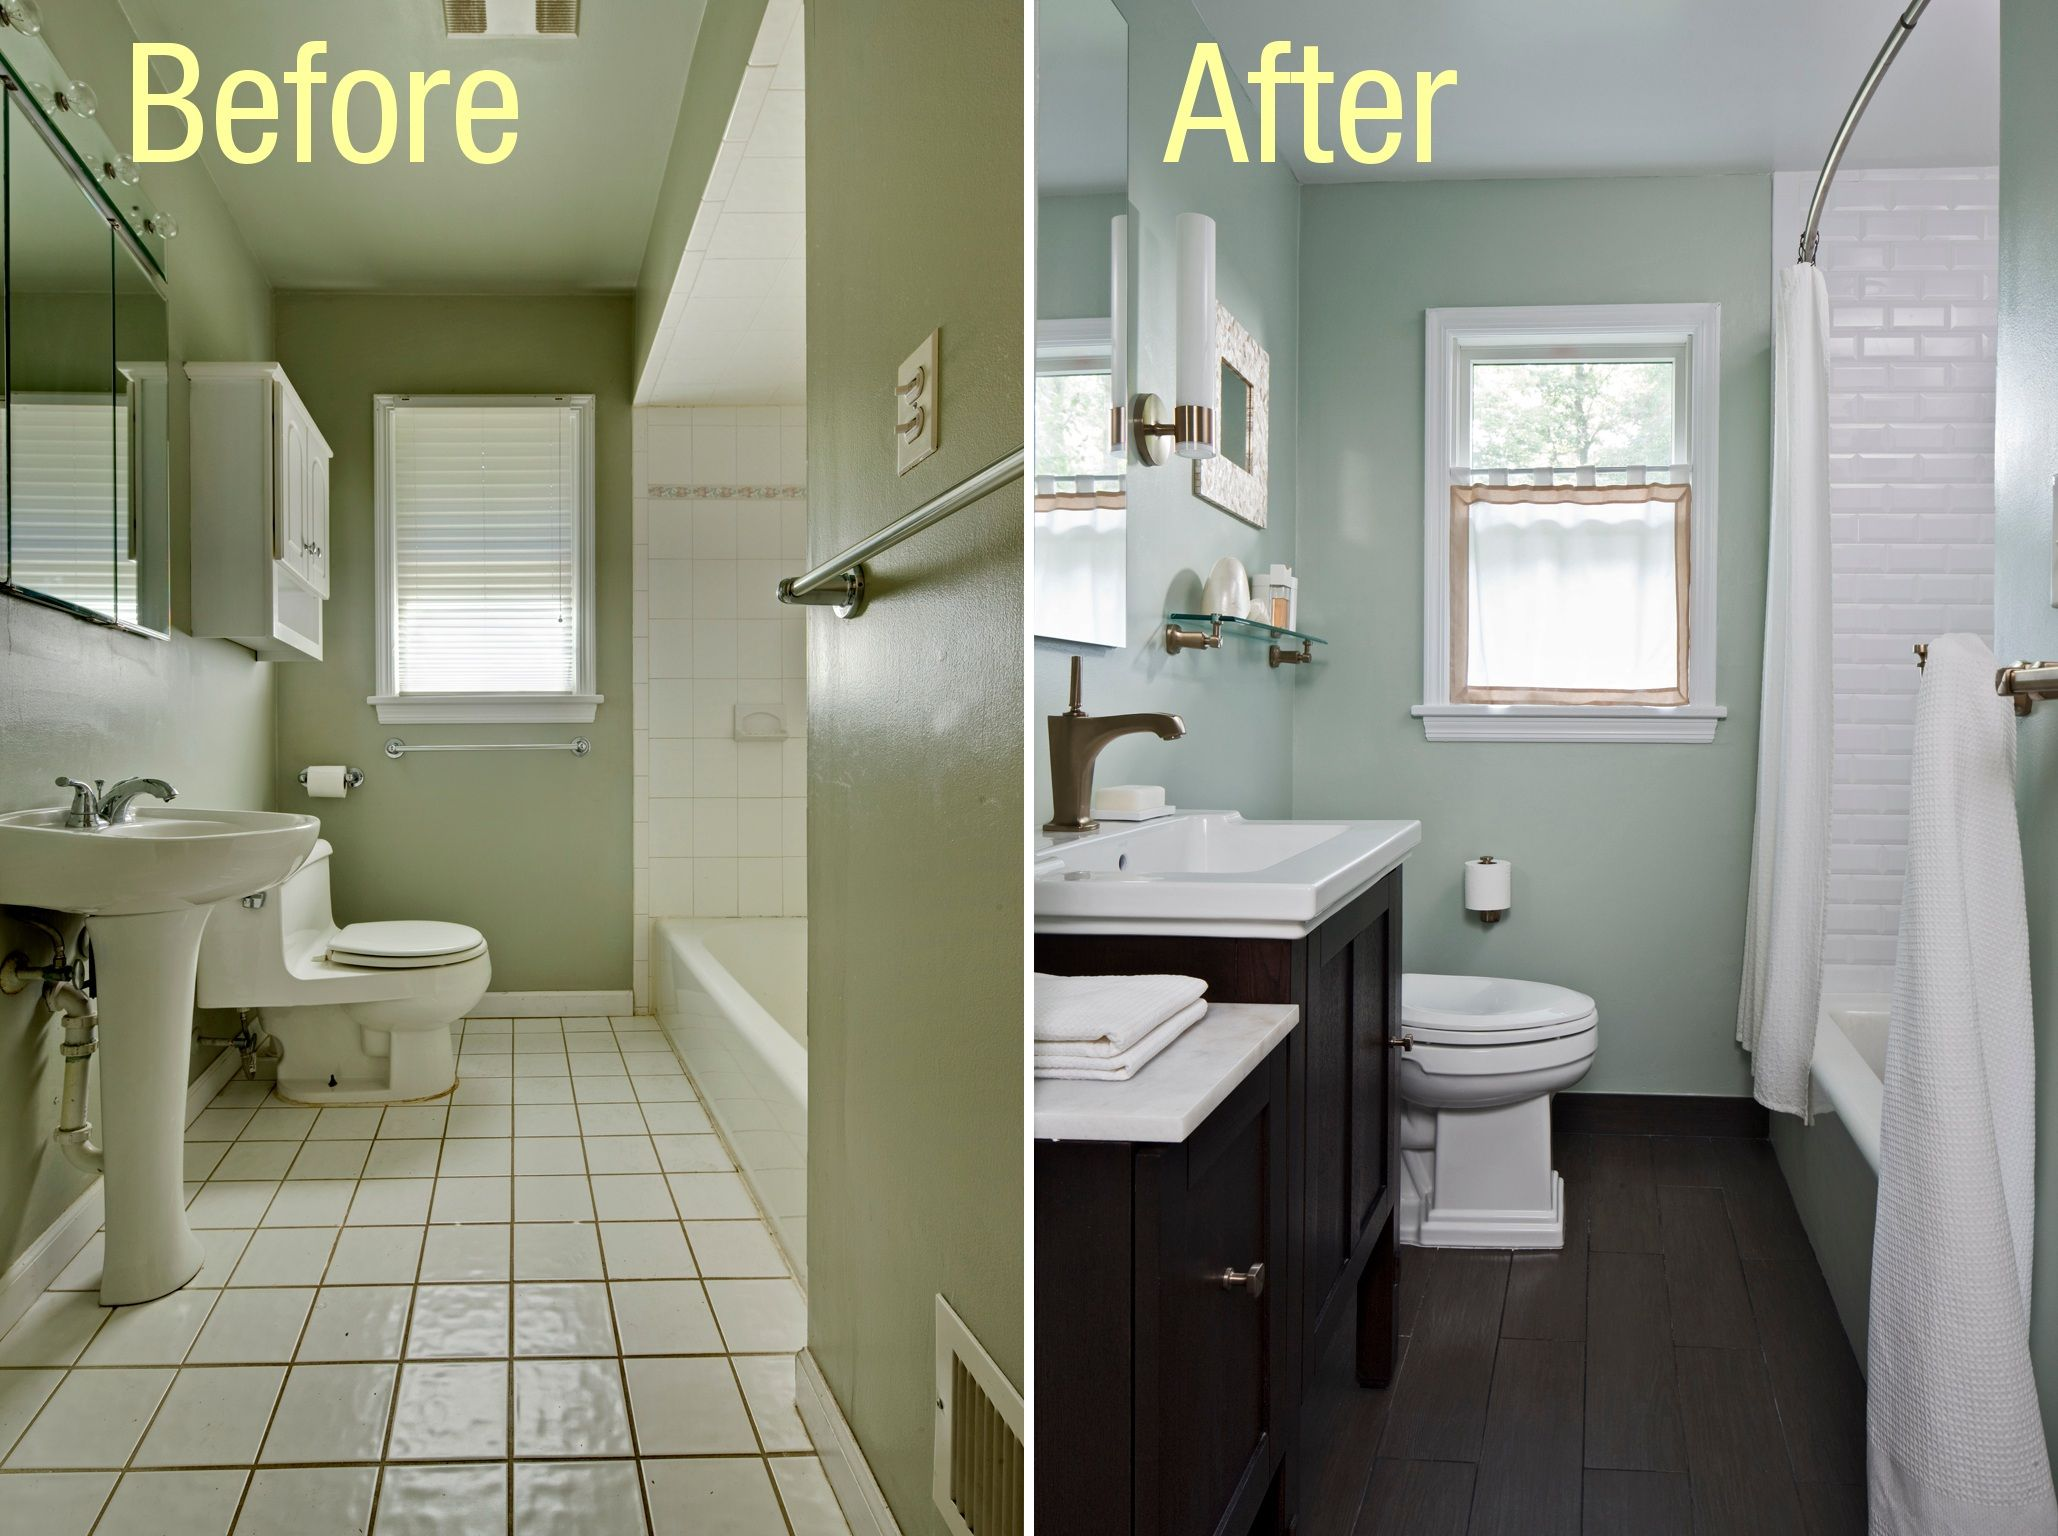 Bathroom Remodel Ideas Before And After Removing Old Tiles - Old home bathroom remodel